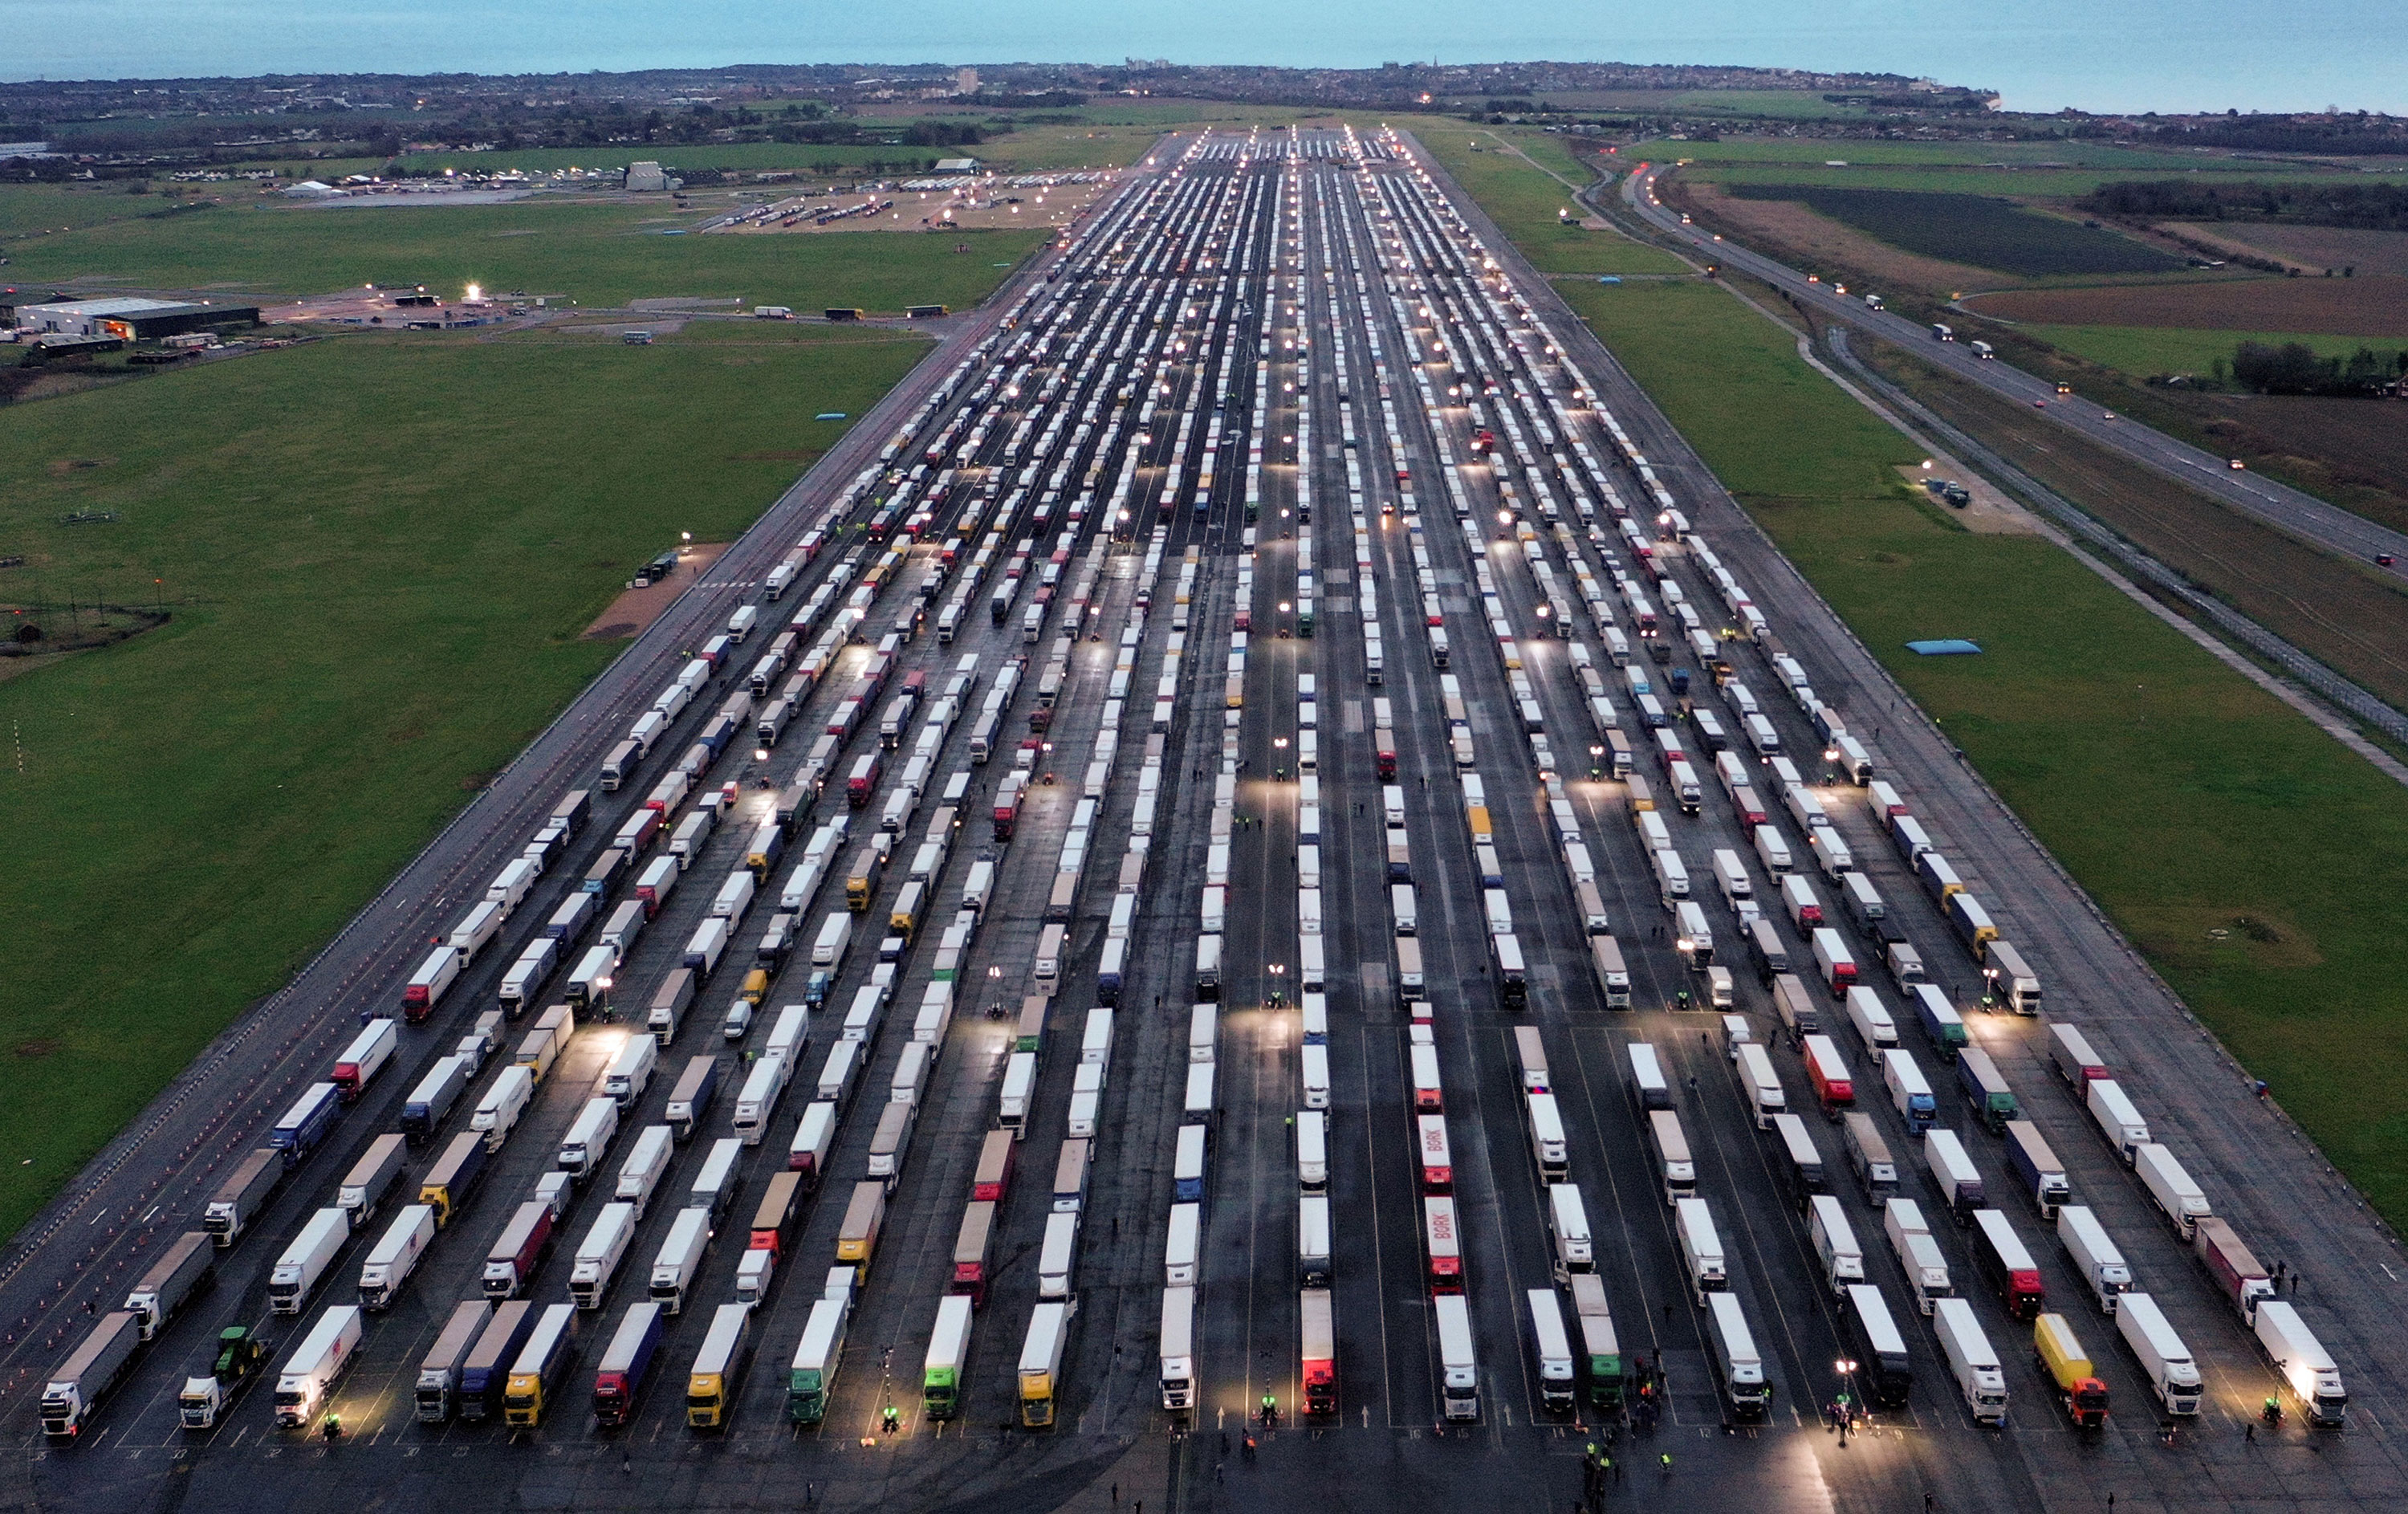 Feight lorries sit on the tarmac at Manston Airport on December 22 in Kent, England.